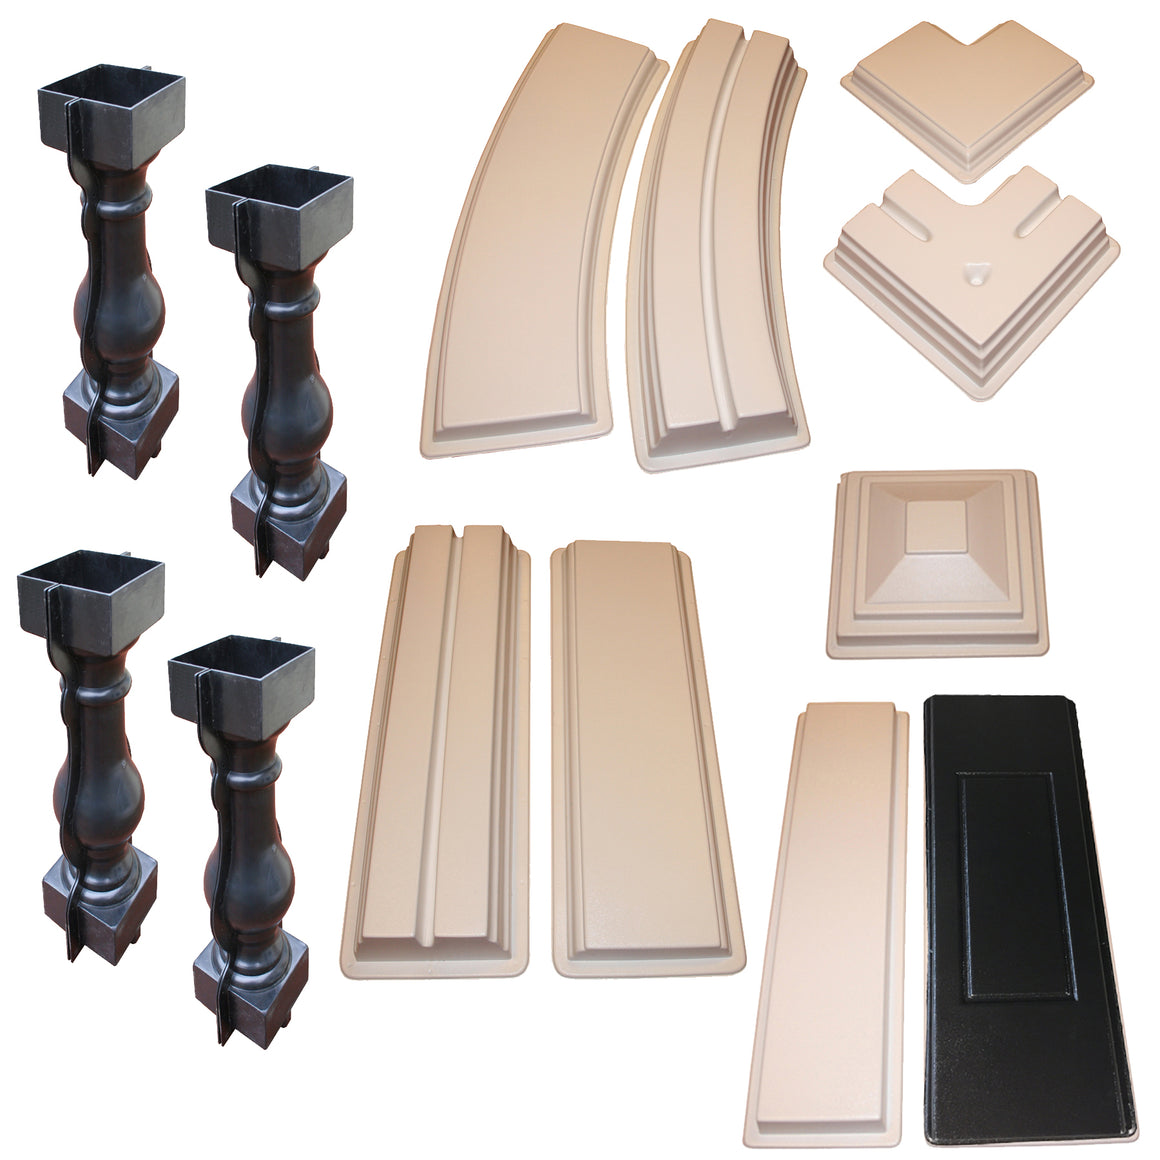 13 Piece Professional Concrete Railing Mold Set